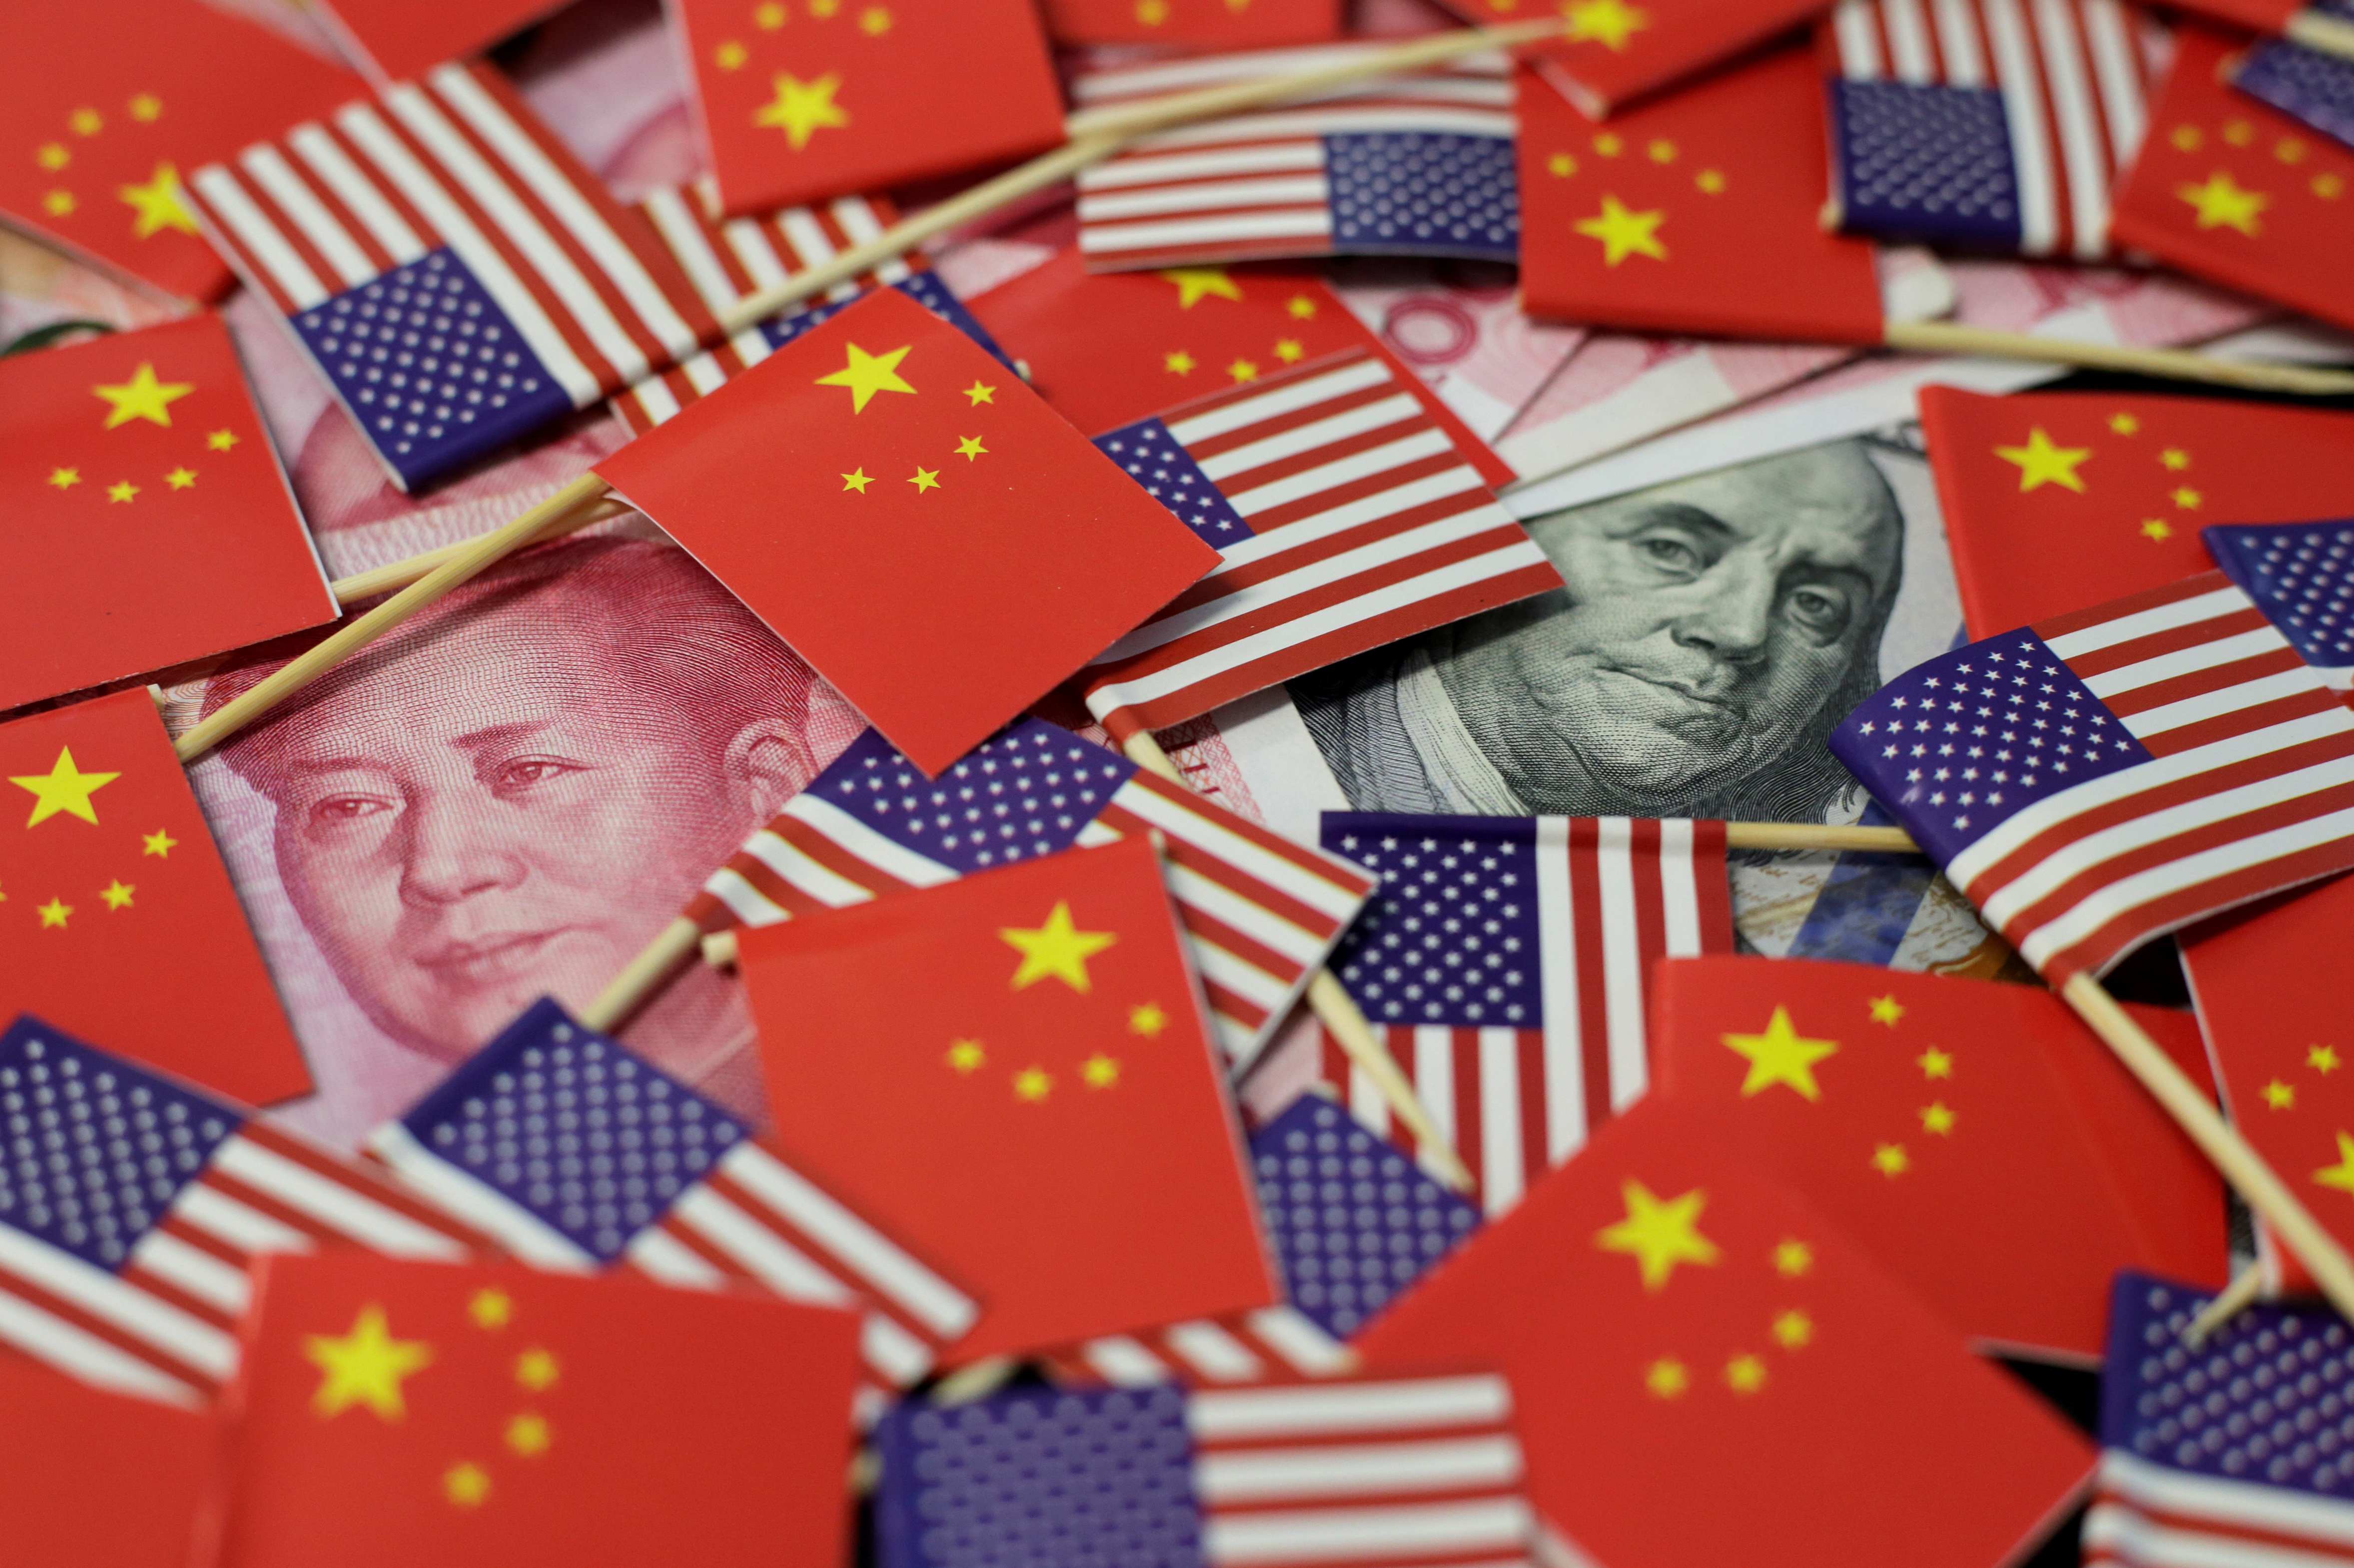 A U.S. dollar banknote featuring American founding father Benjamin Franklin and a China's yuan banknote featuring late Chinese chairman Mao Zedong are seen among U.S. and Chinese flags in this illustration picture taken May 20, 2019. REUTERS/Jason Lee/Illustration/File Photo